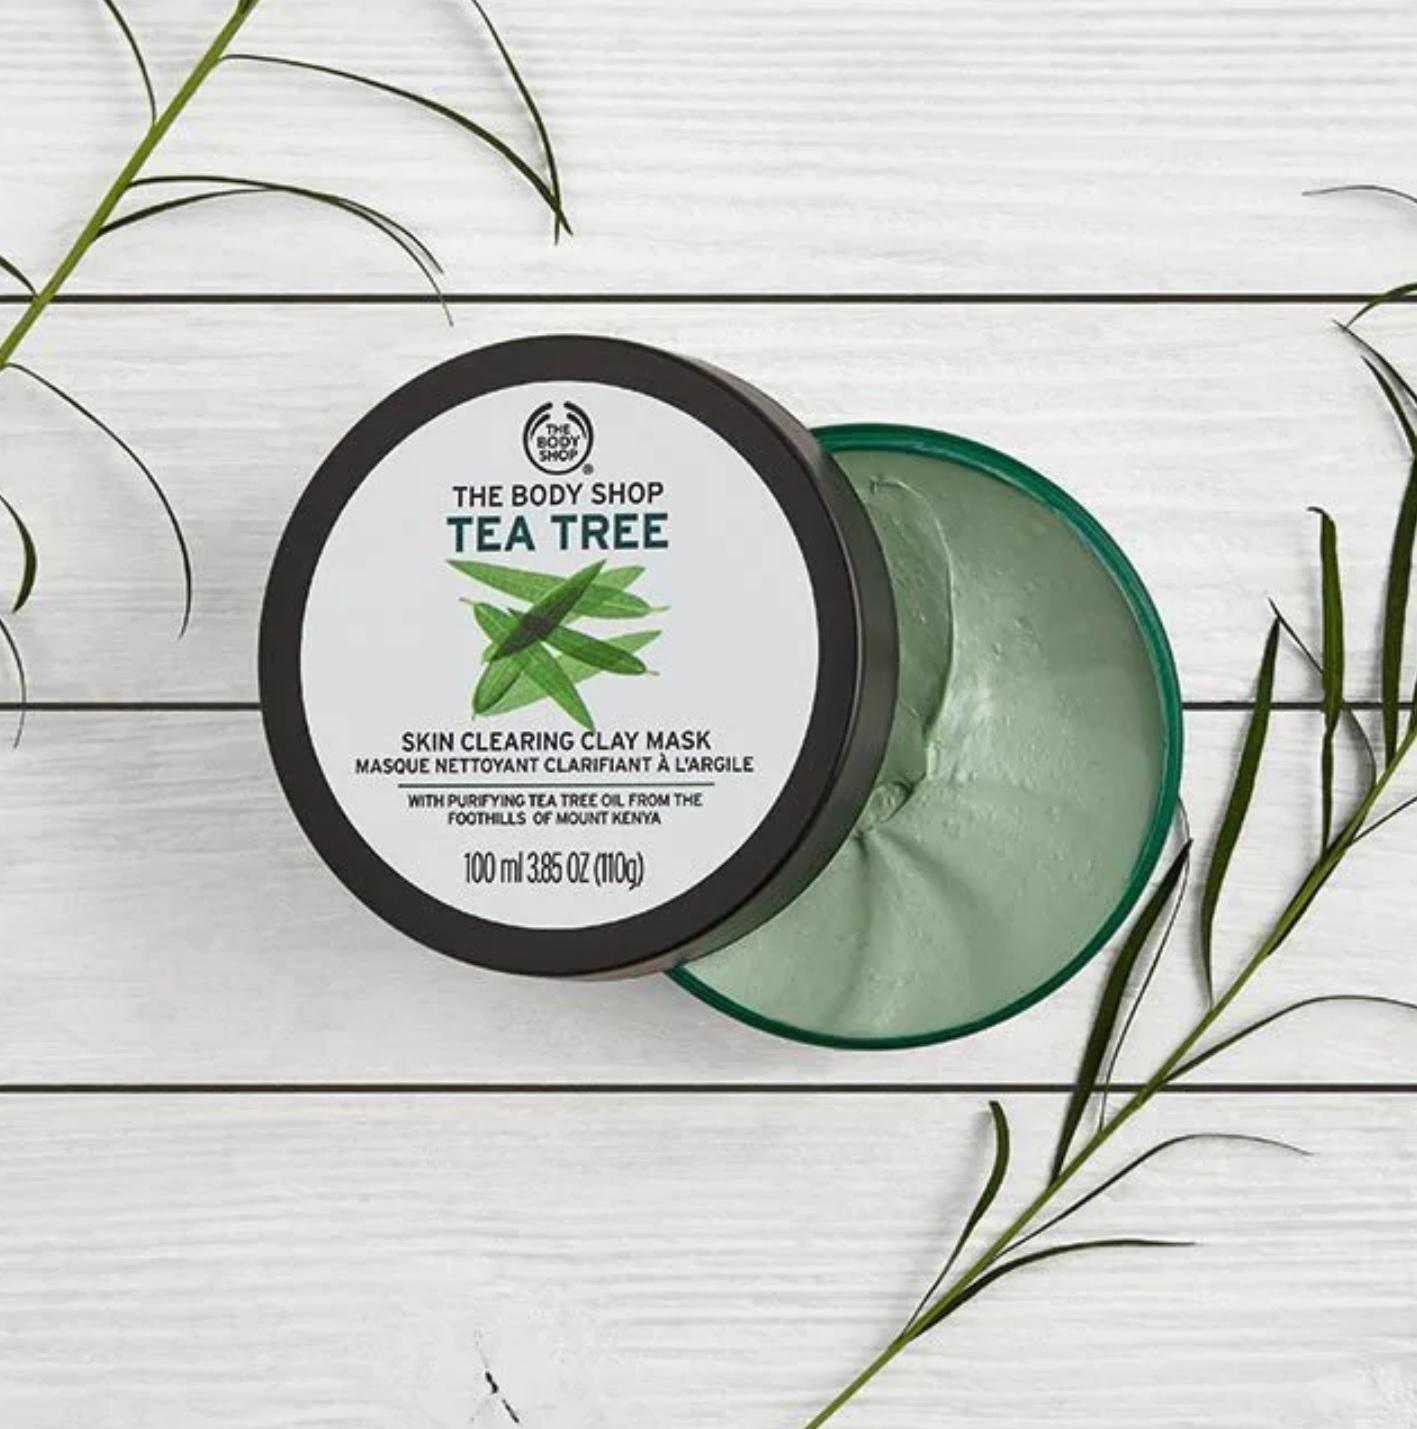 The Body Shop Tea Tree Skin Clearing Clay Mask-1